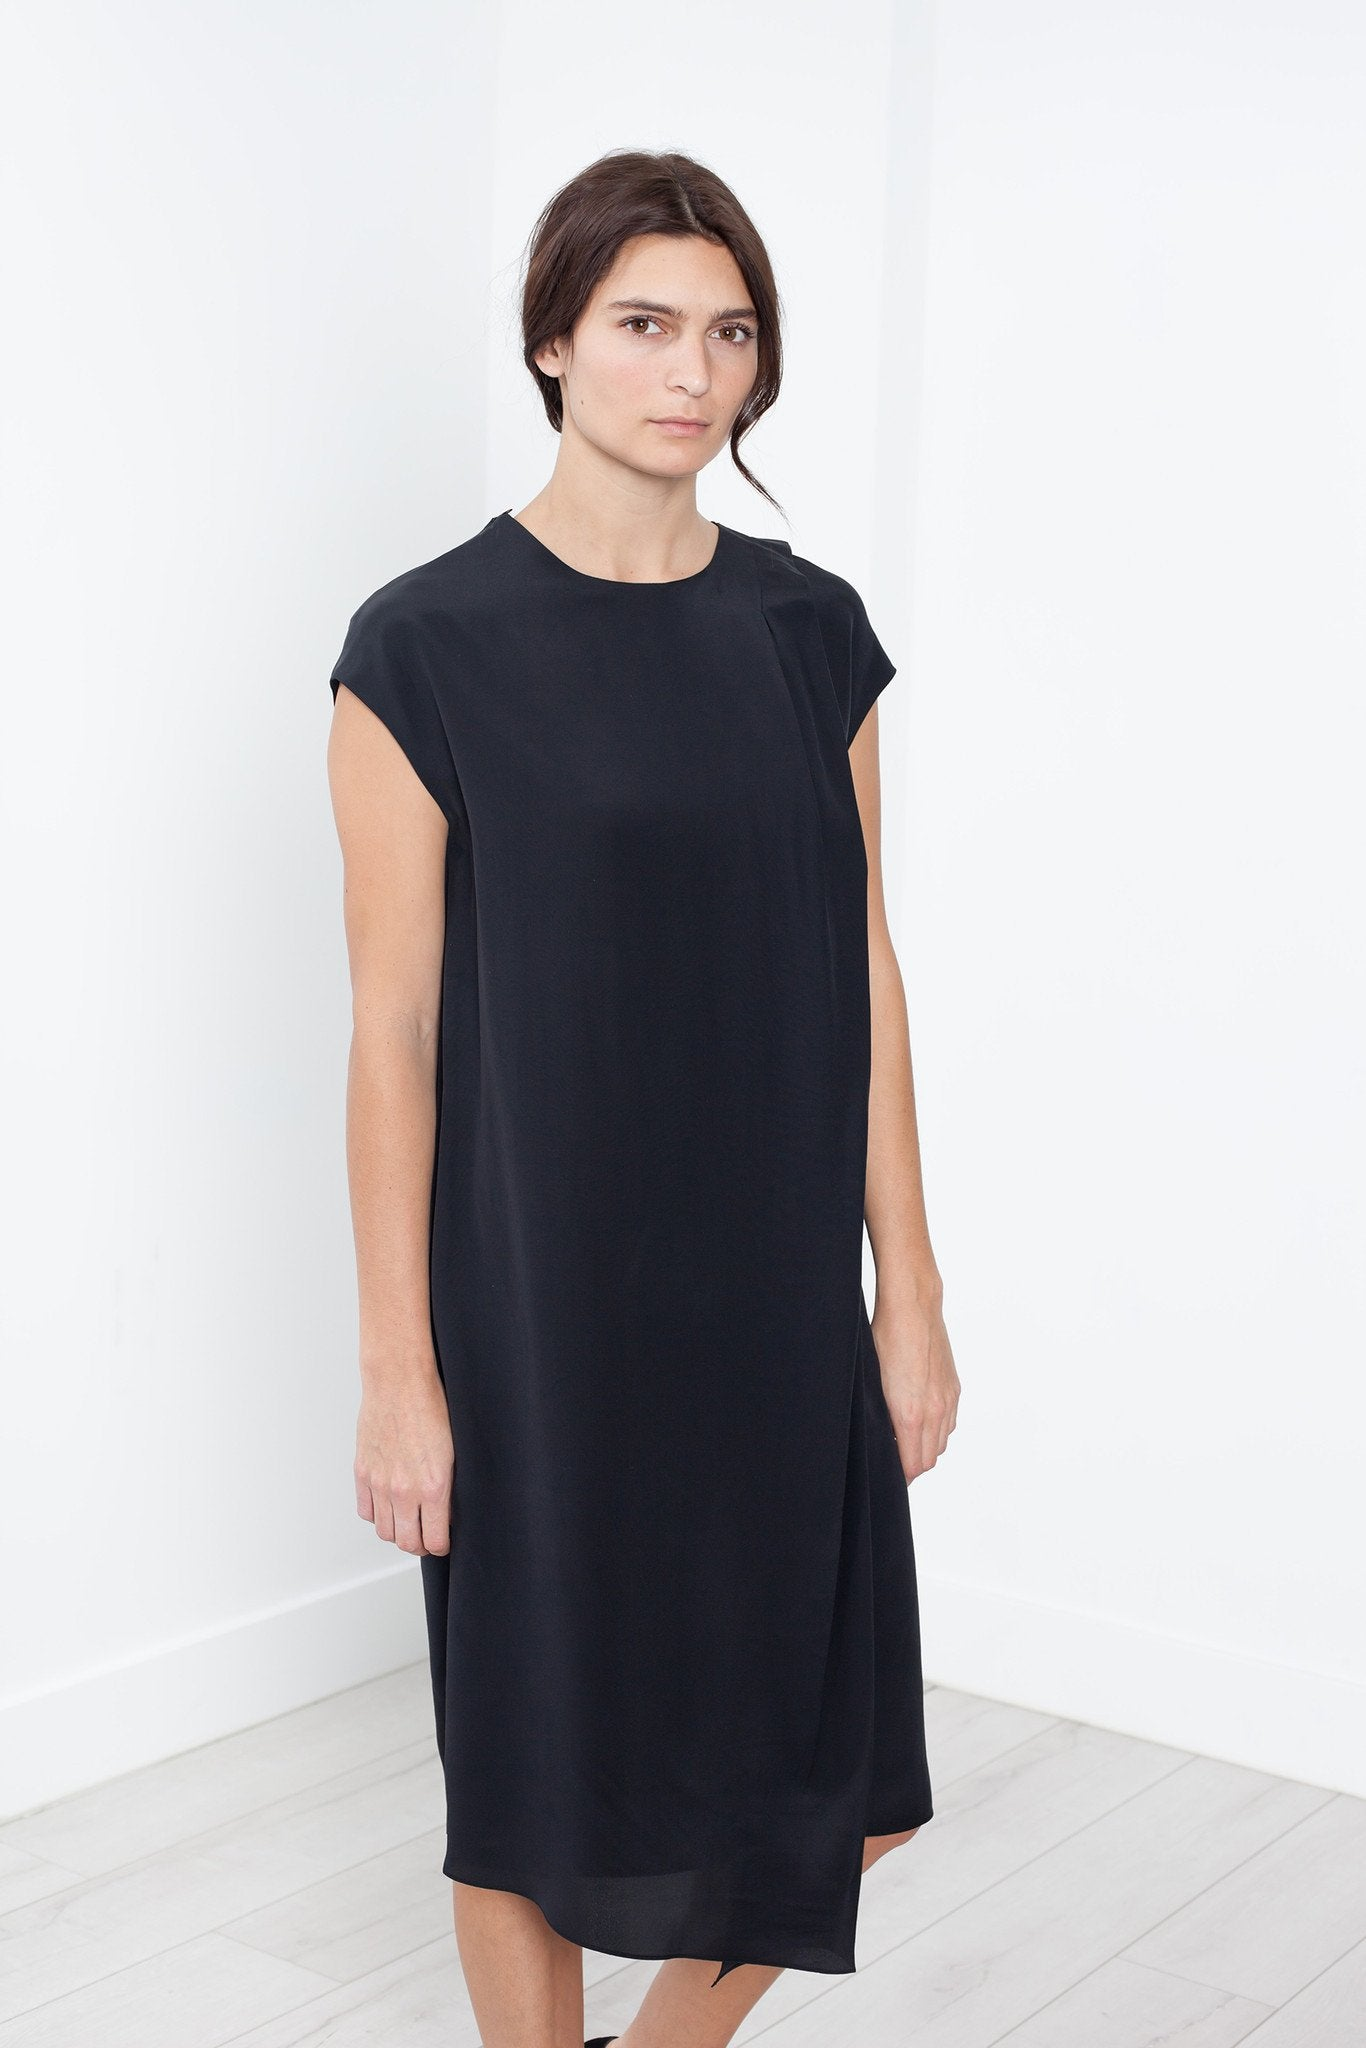 Elvira Dress in Black